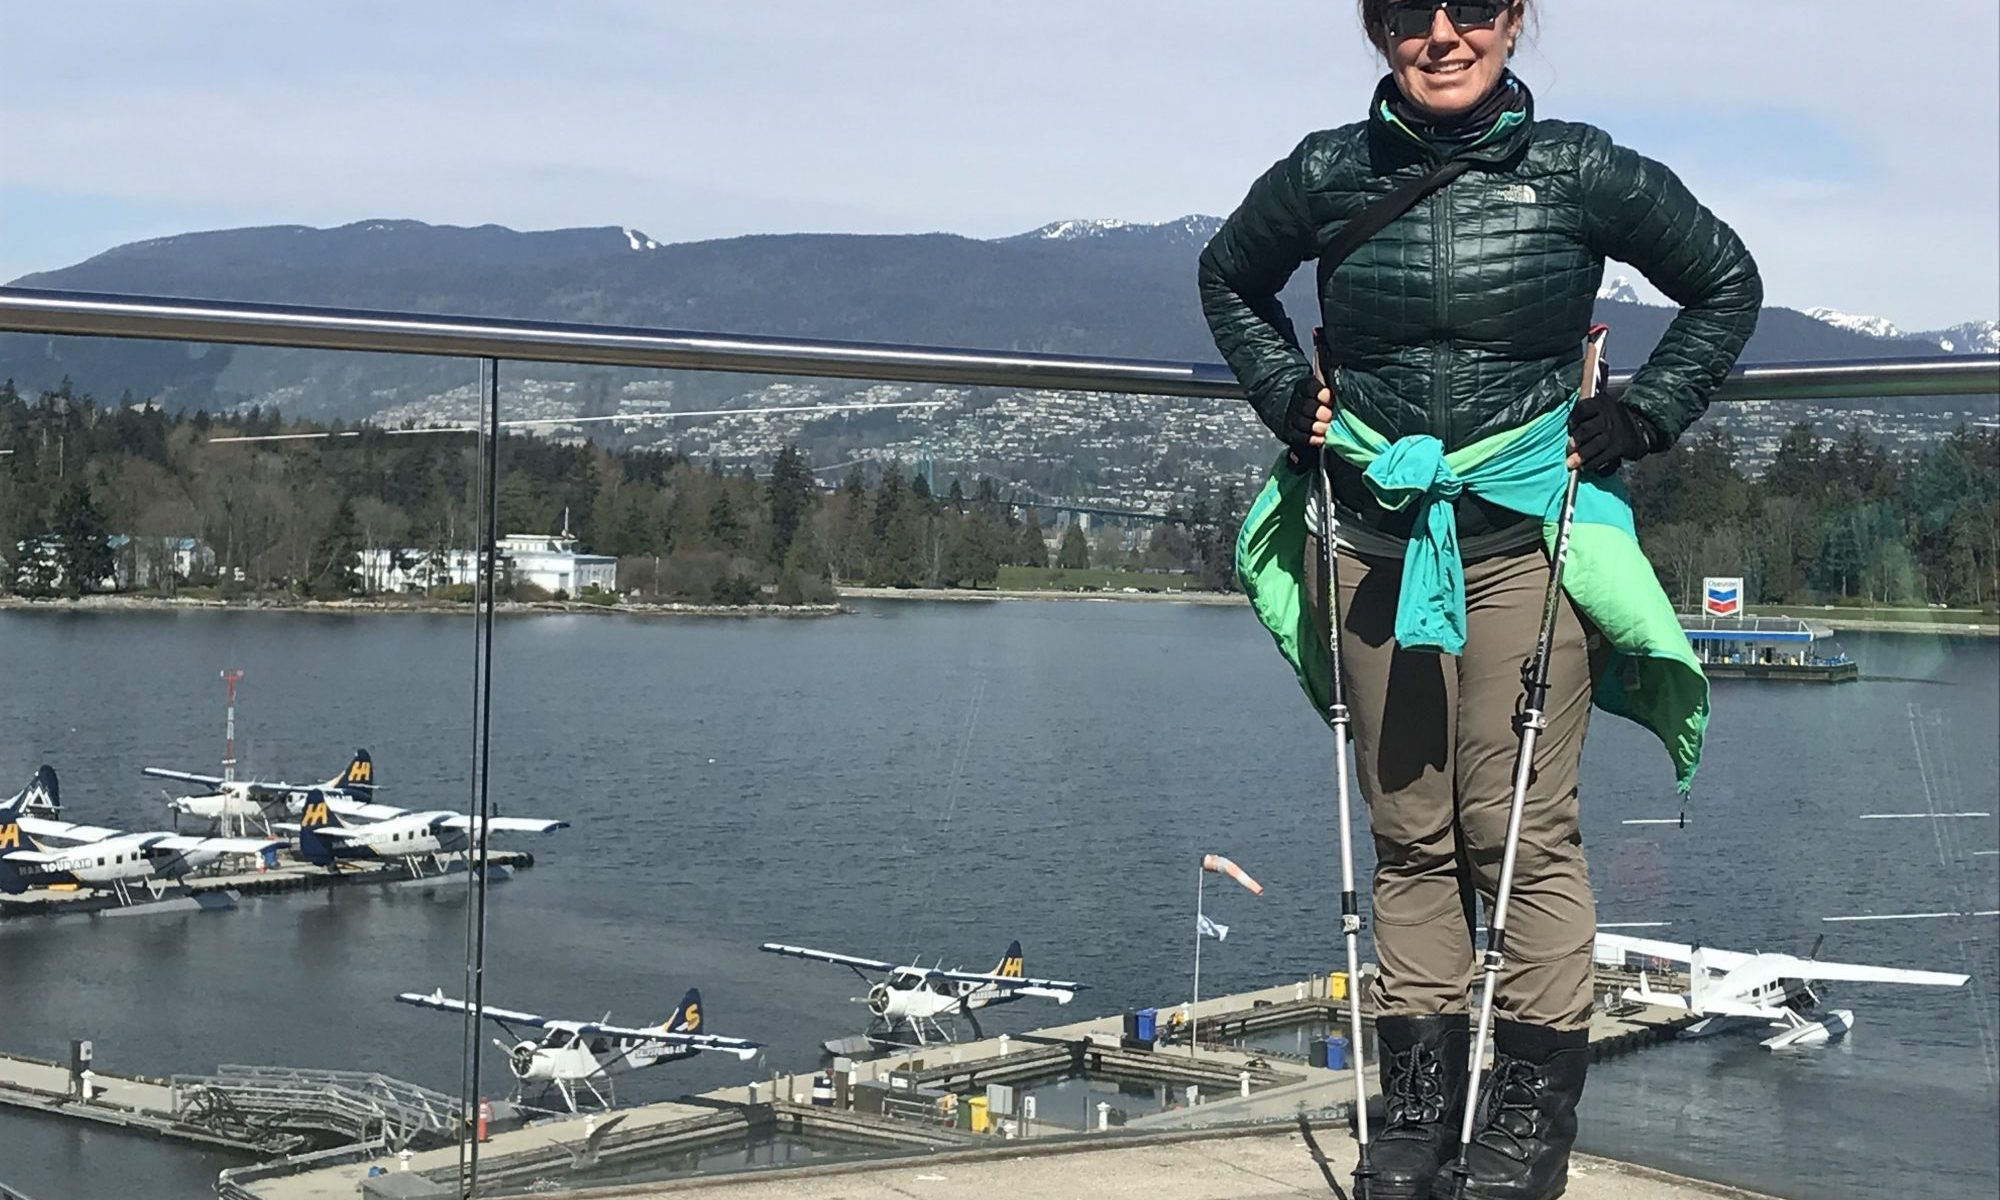 Training in the off-season for the ski-season - Nordic Walking. Nordic Walking in Vancouver - Waterfront.